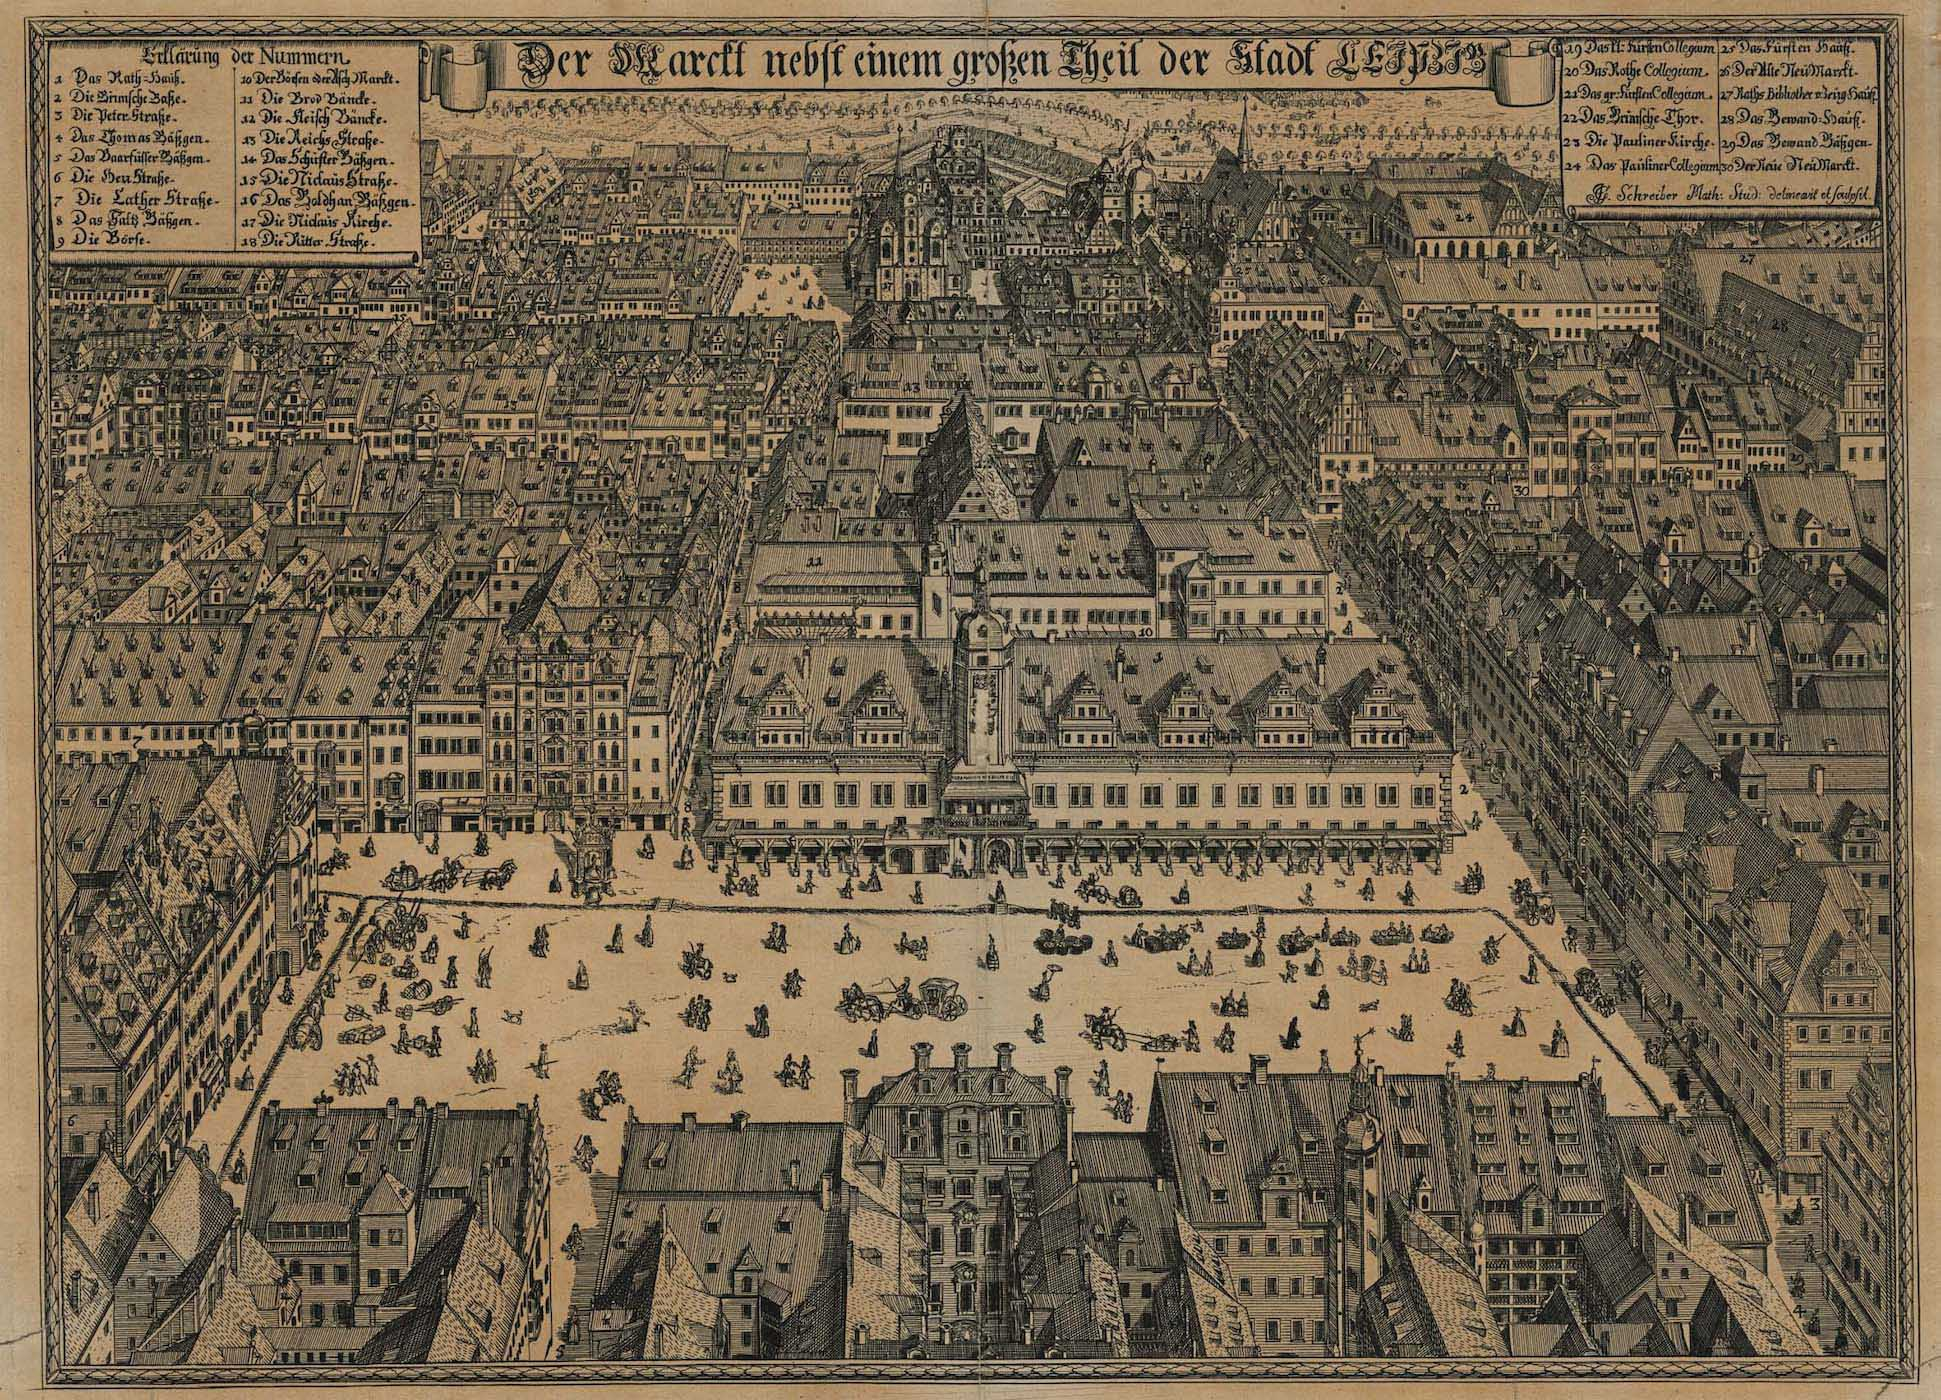 View of the city of Leipzig centered on the main square and the Altes Rathaus (Old Town Hall) from 1712.